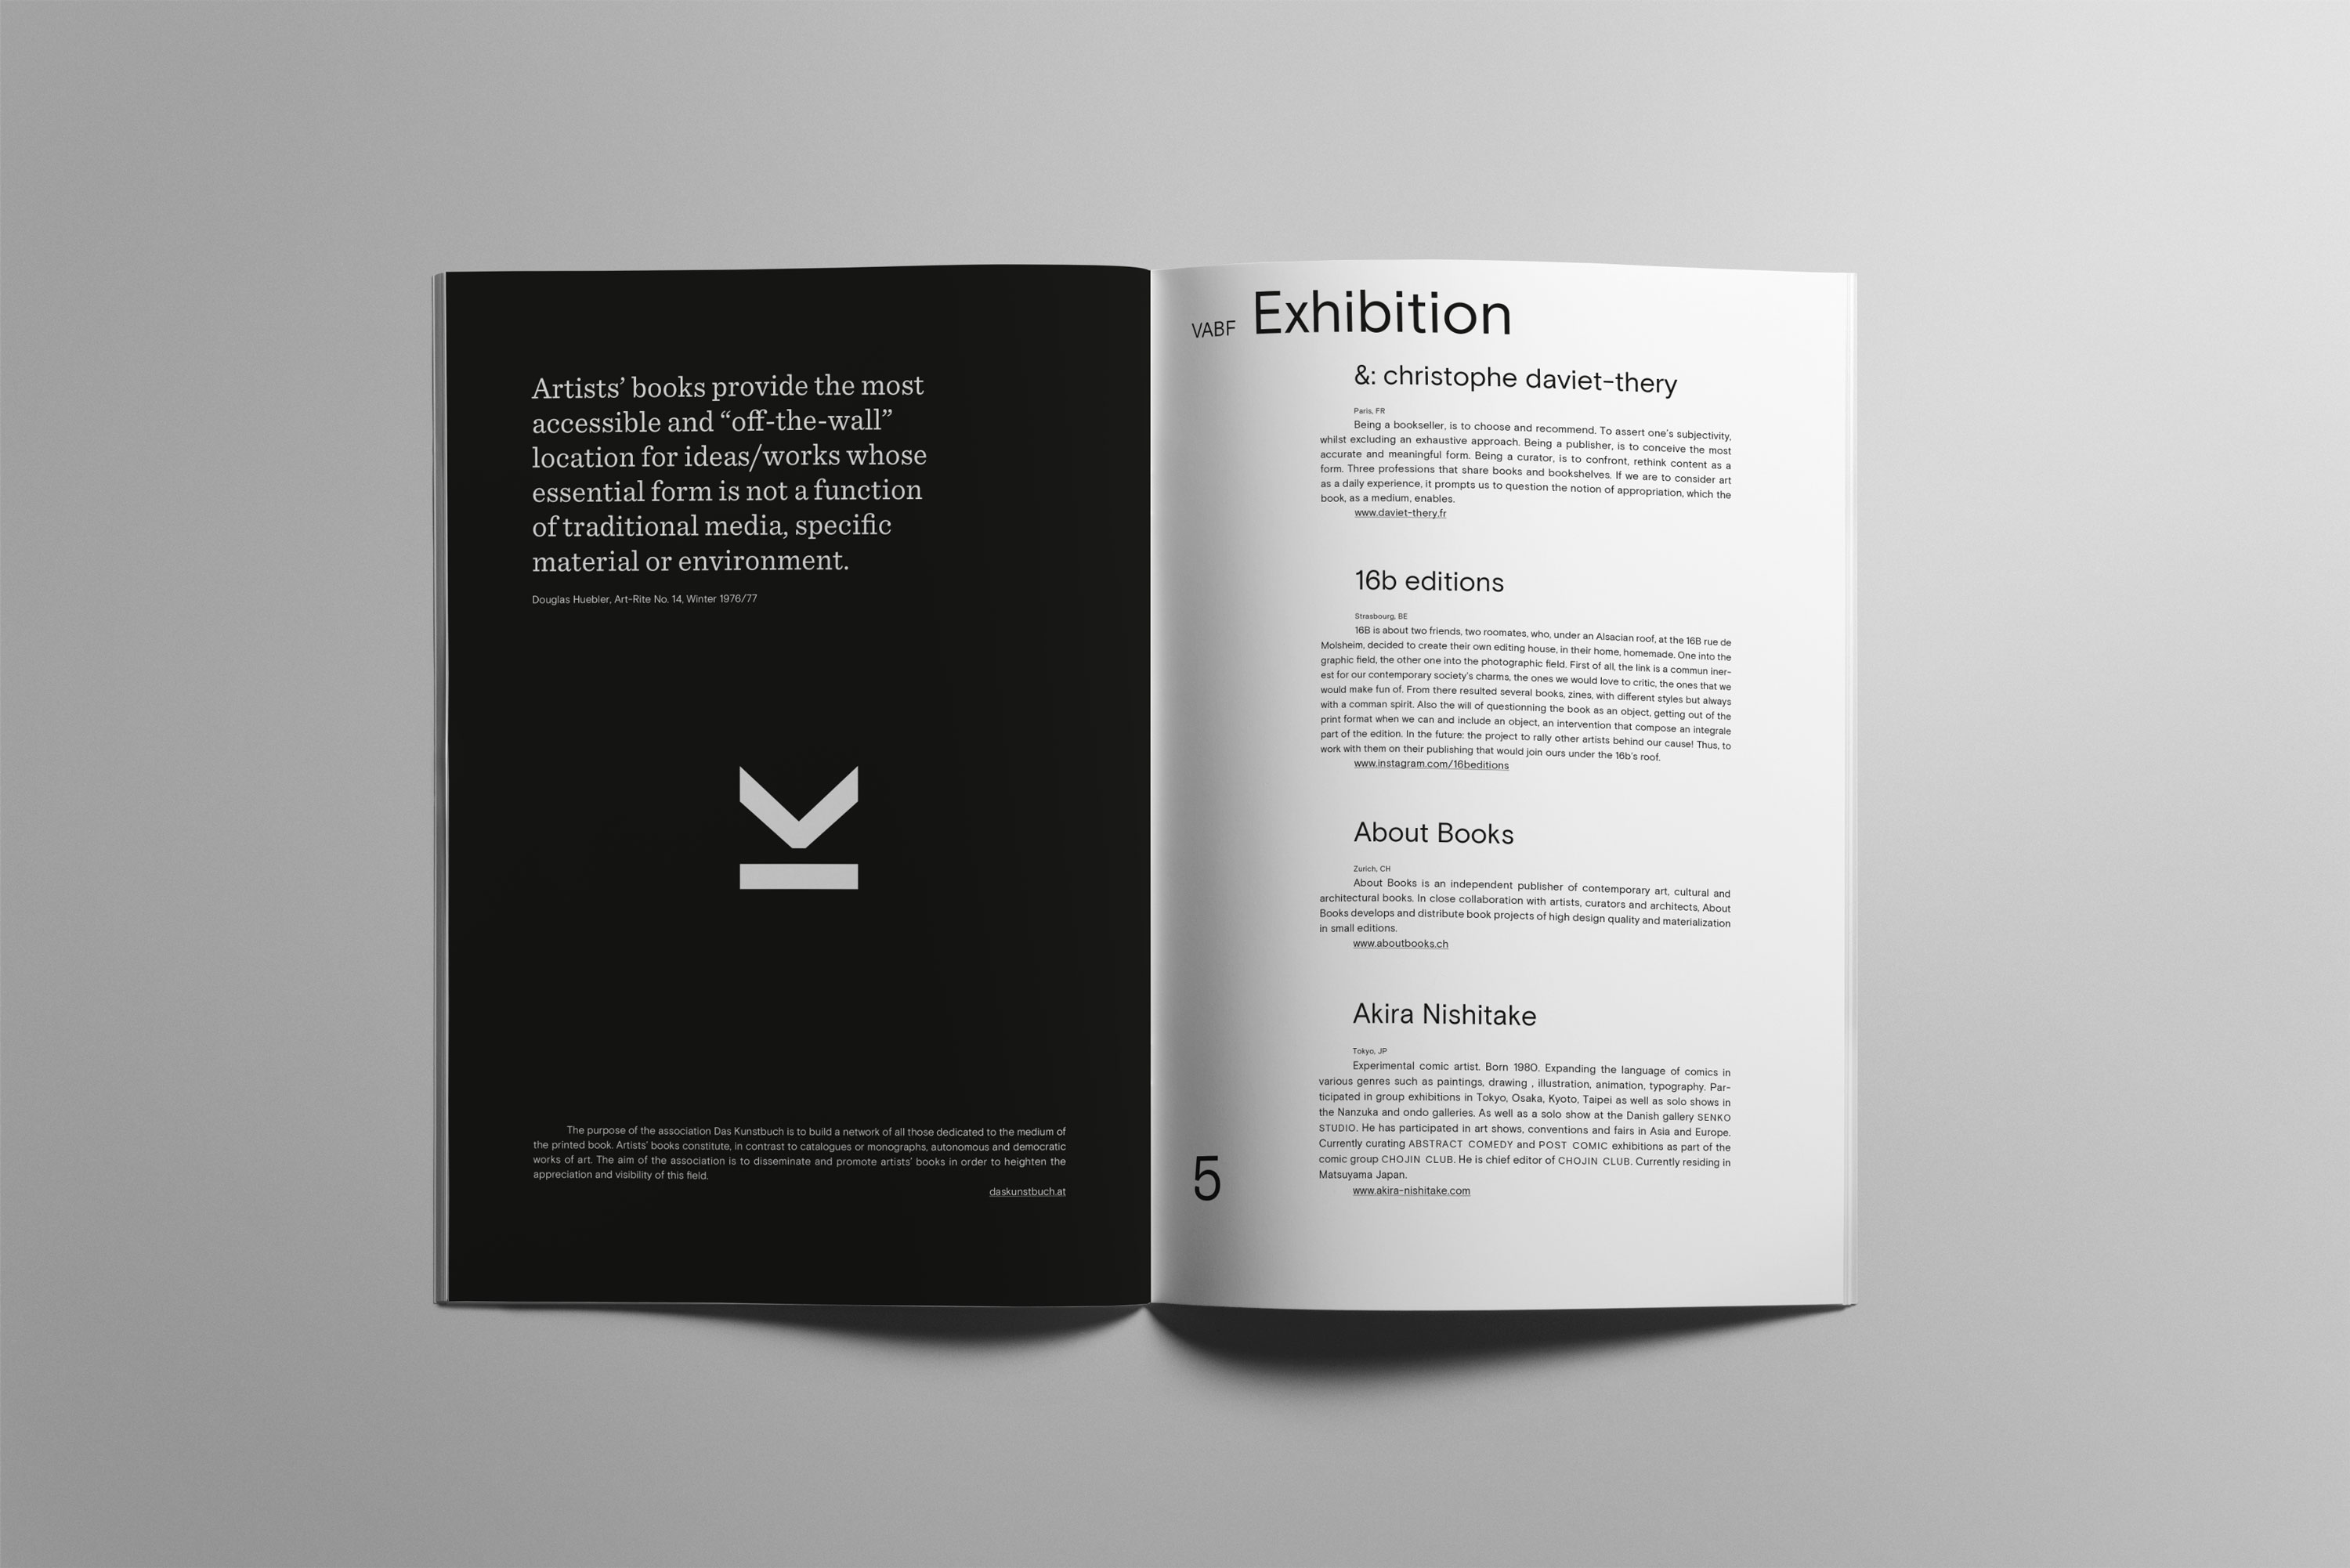 vienna-art-book-fair-catalog-03